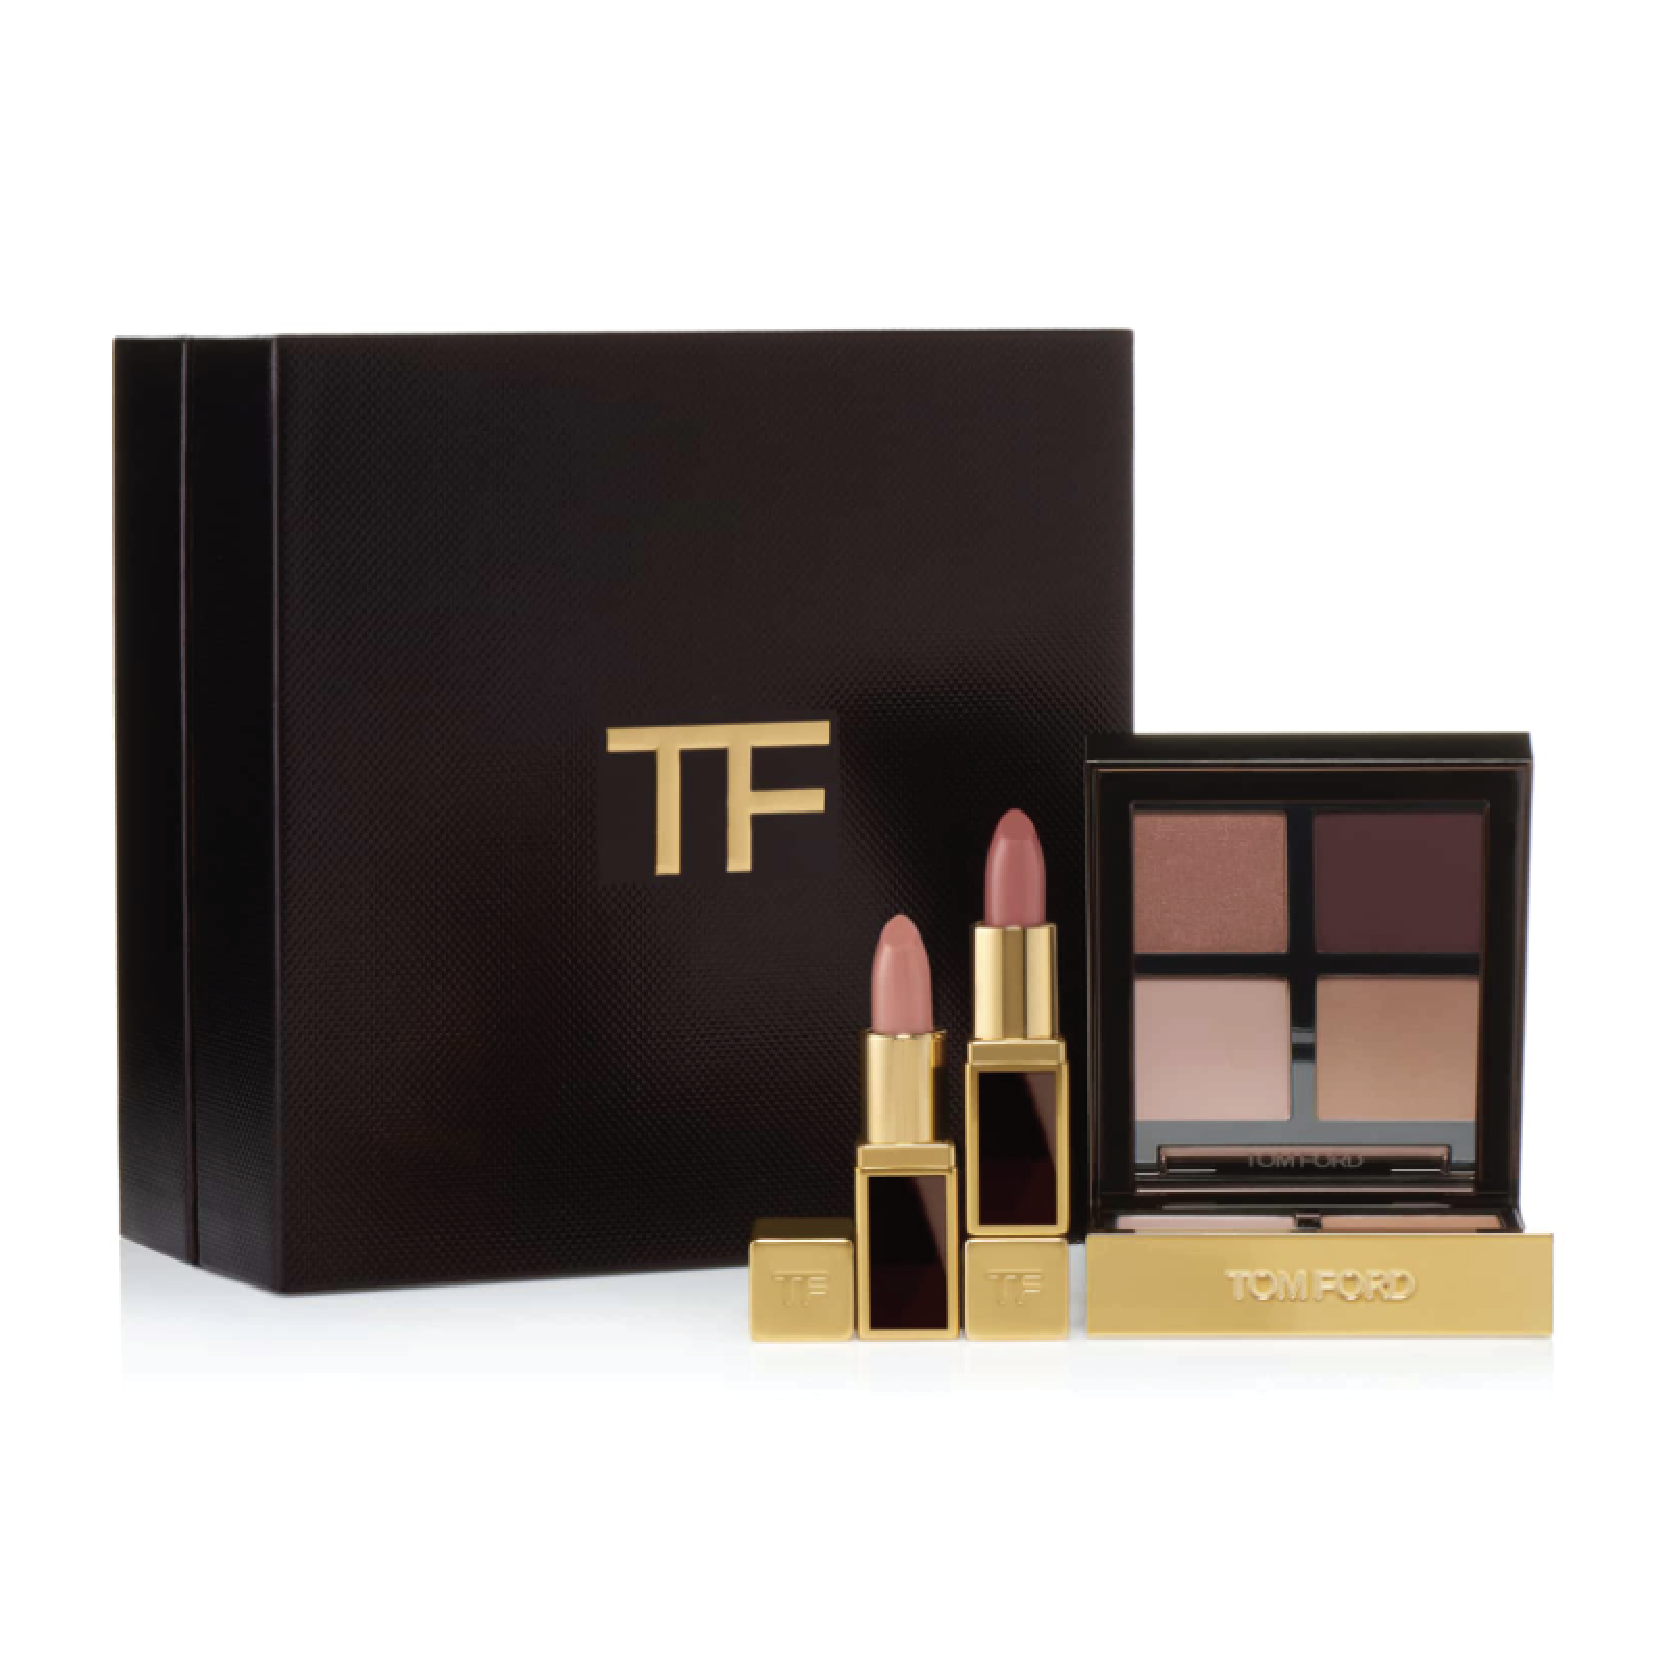 Tom Ford Iris Bronze Eye & Lip Set - $87 at NordstromTom Ford makes beautiful makeup and this is a great luxe mini set.